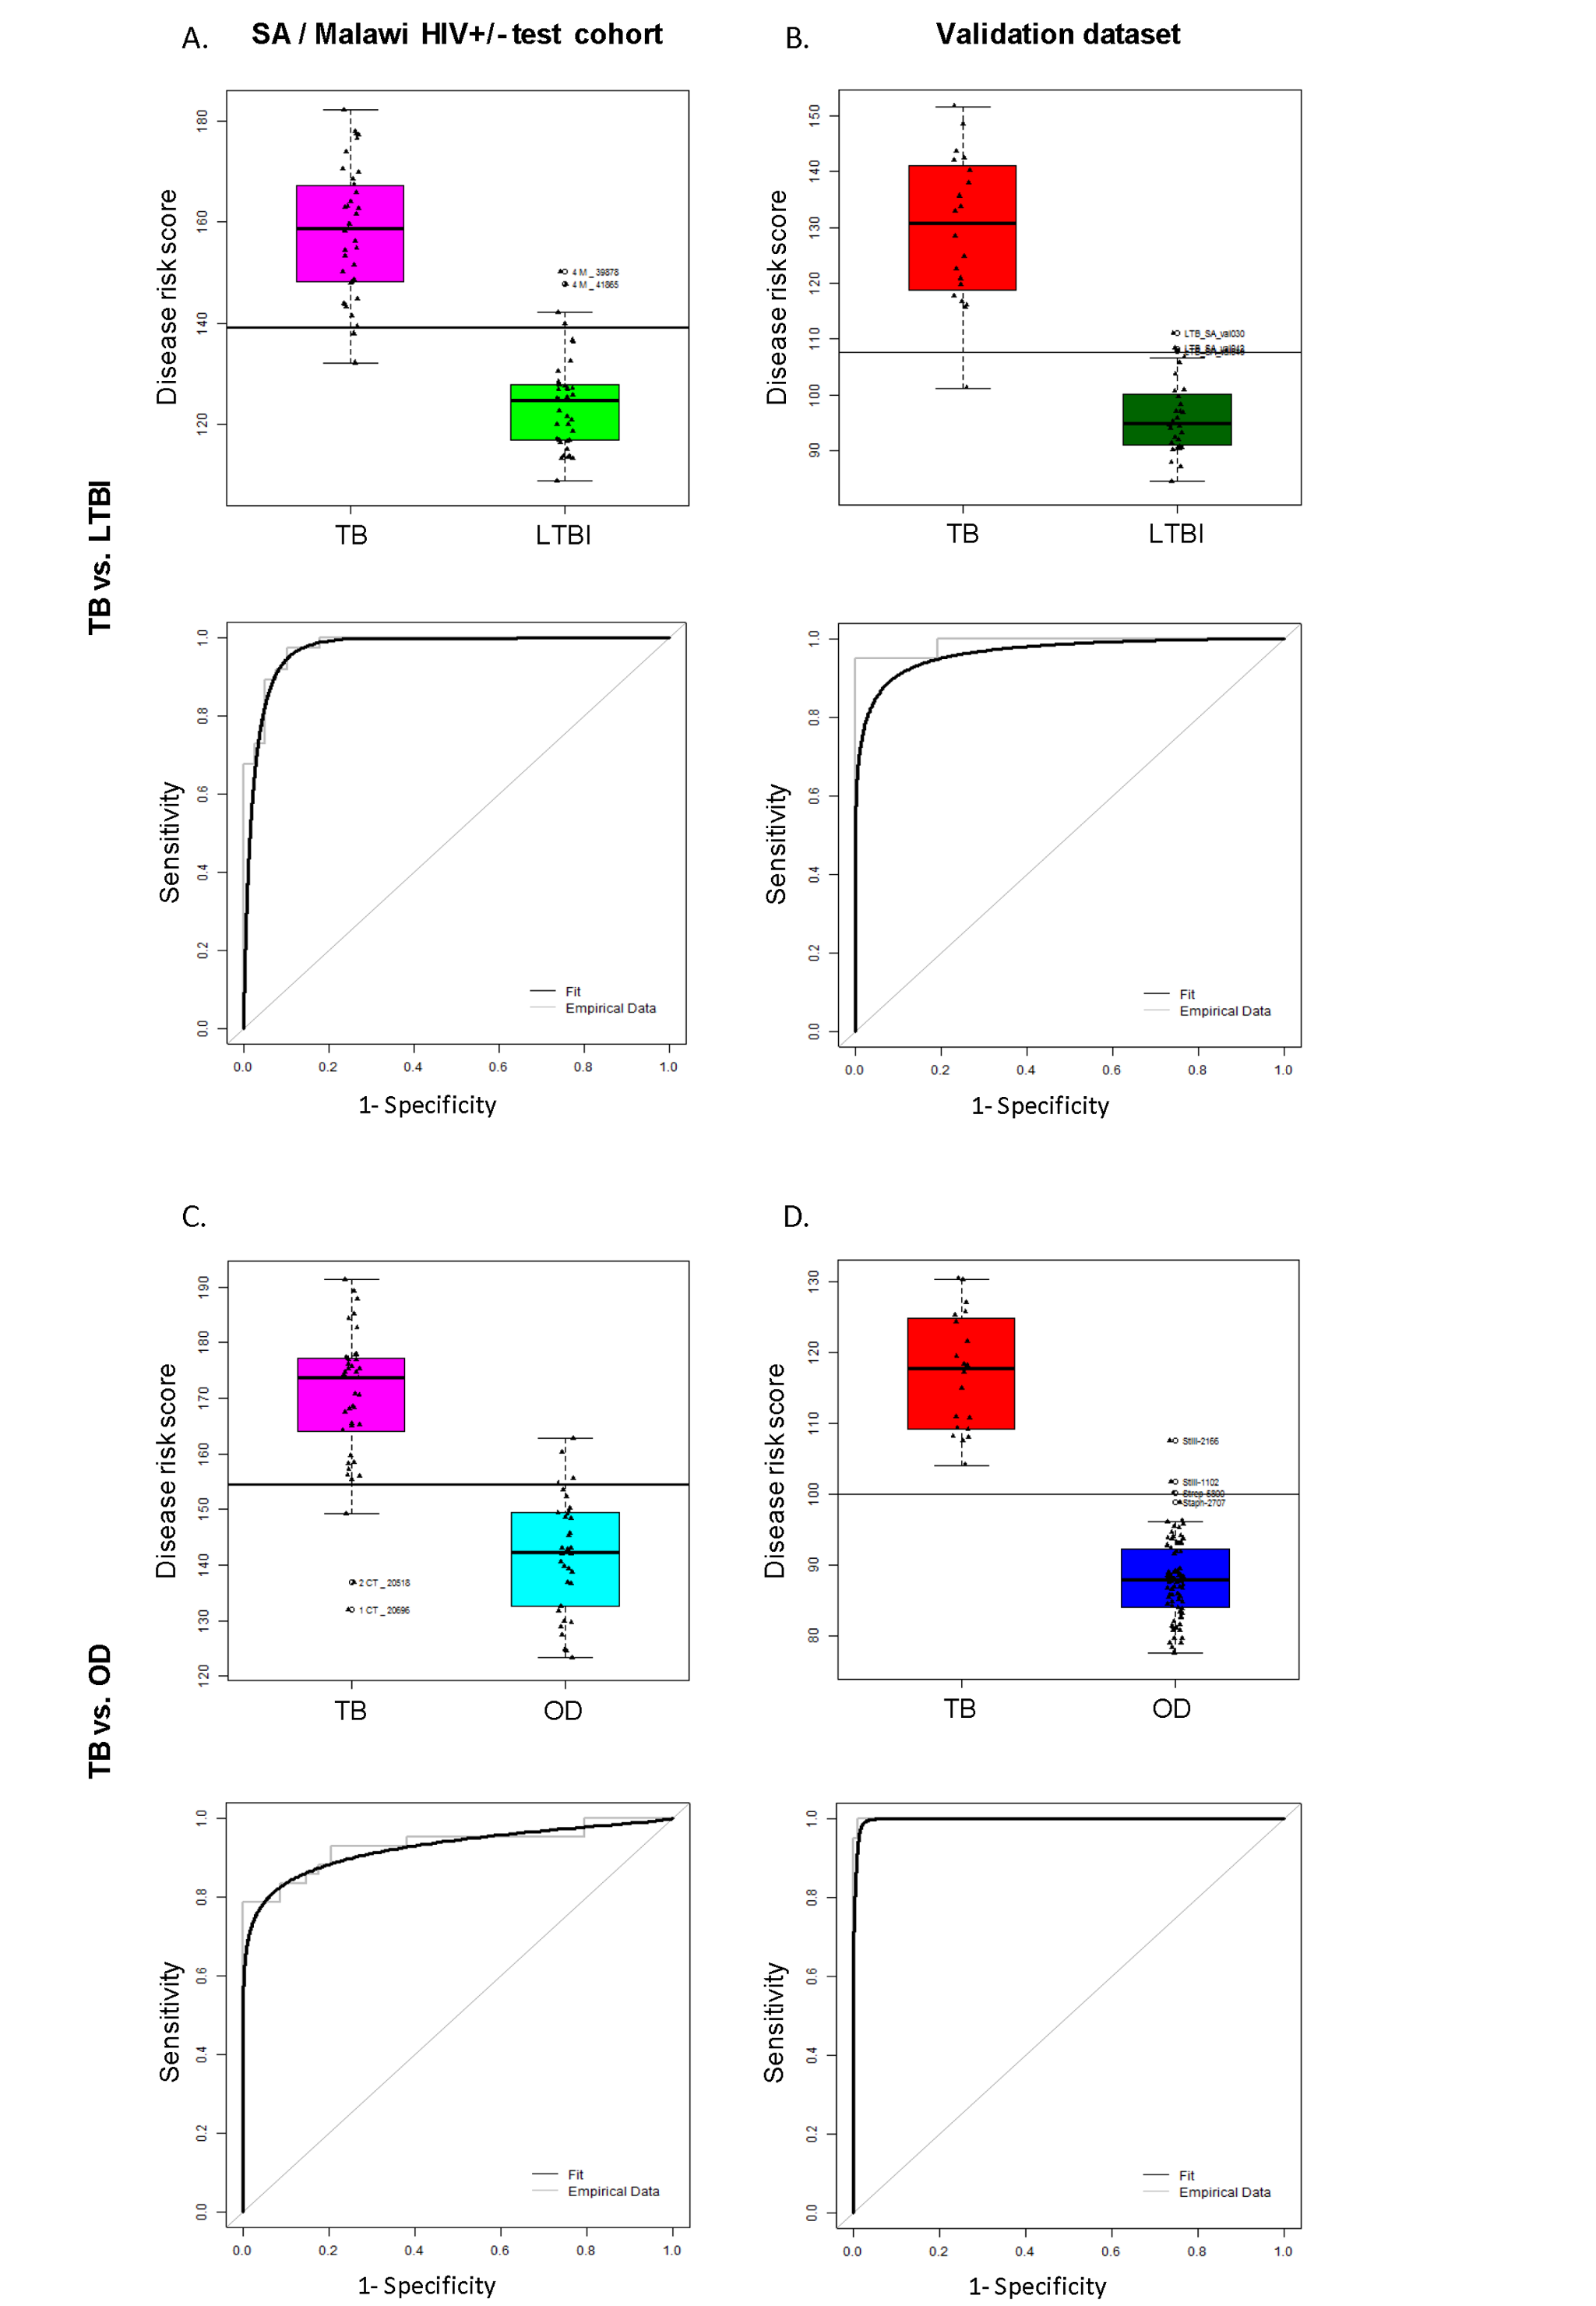 Classification using the disease risk score on the test cohort and validation dataset.